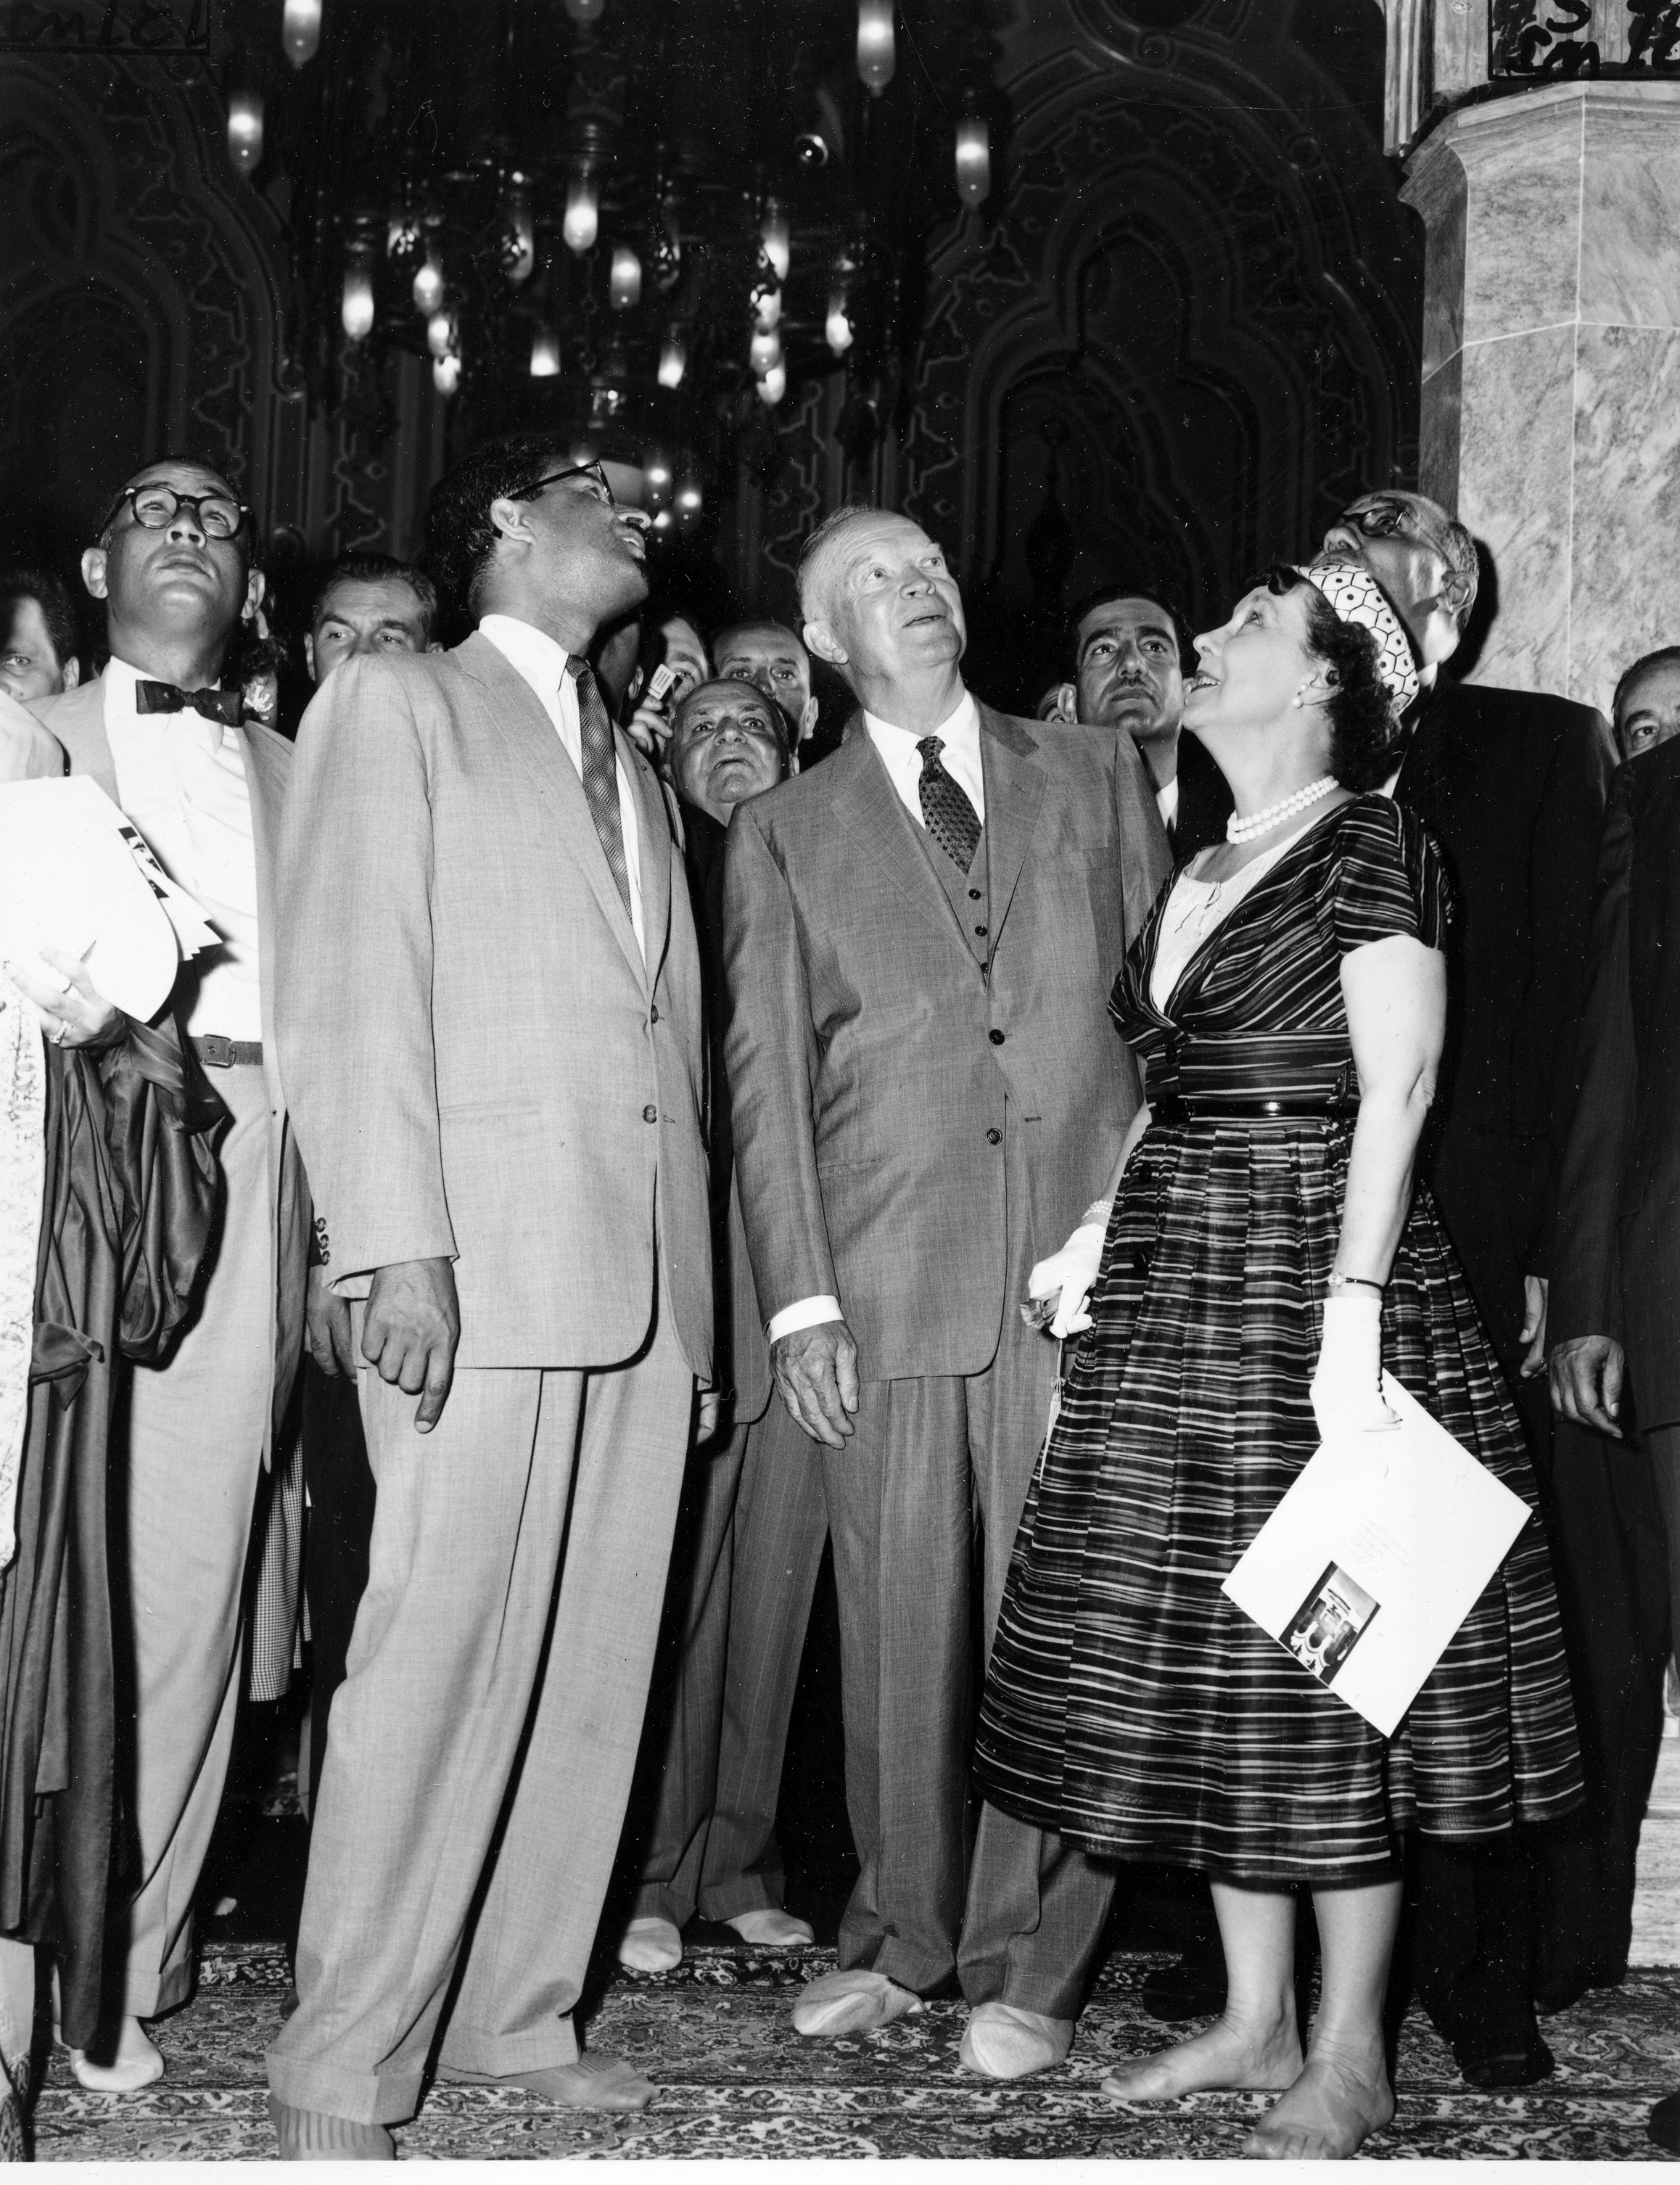 First lady Mamie Doud Eisenhower and U.S. President Dwight D. Eisenhower stand shoeless as they admire the architectural details pointed out by Sheikh Abdullah Al-Khayyal, Saudi Arabian ambassador, at the dedication ceremony of the Islamic Center and Mosque, in Washington, on June 28, 1957.